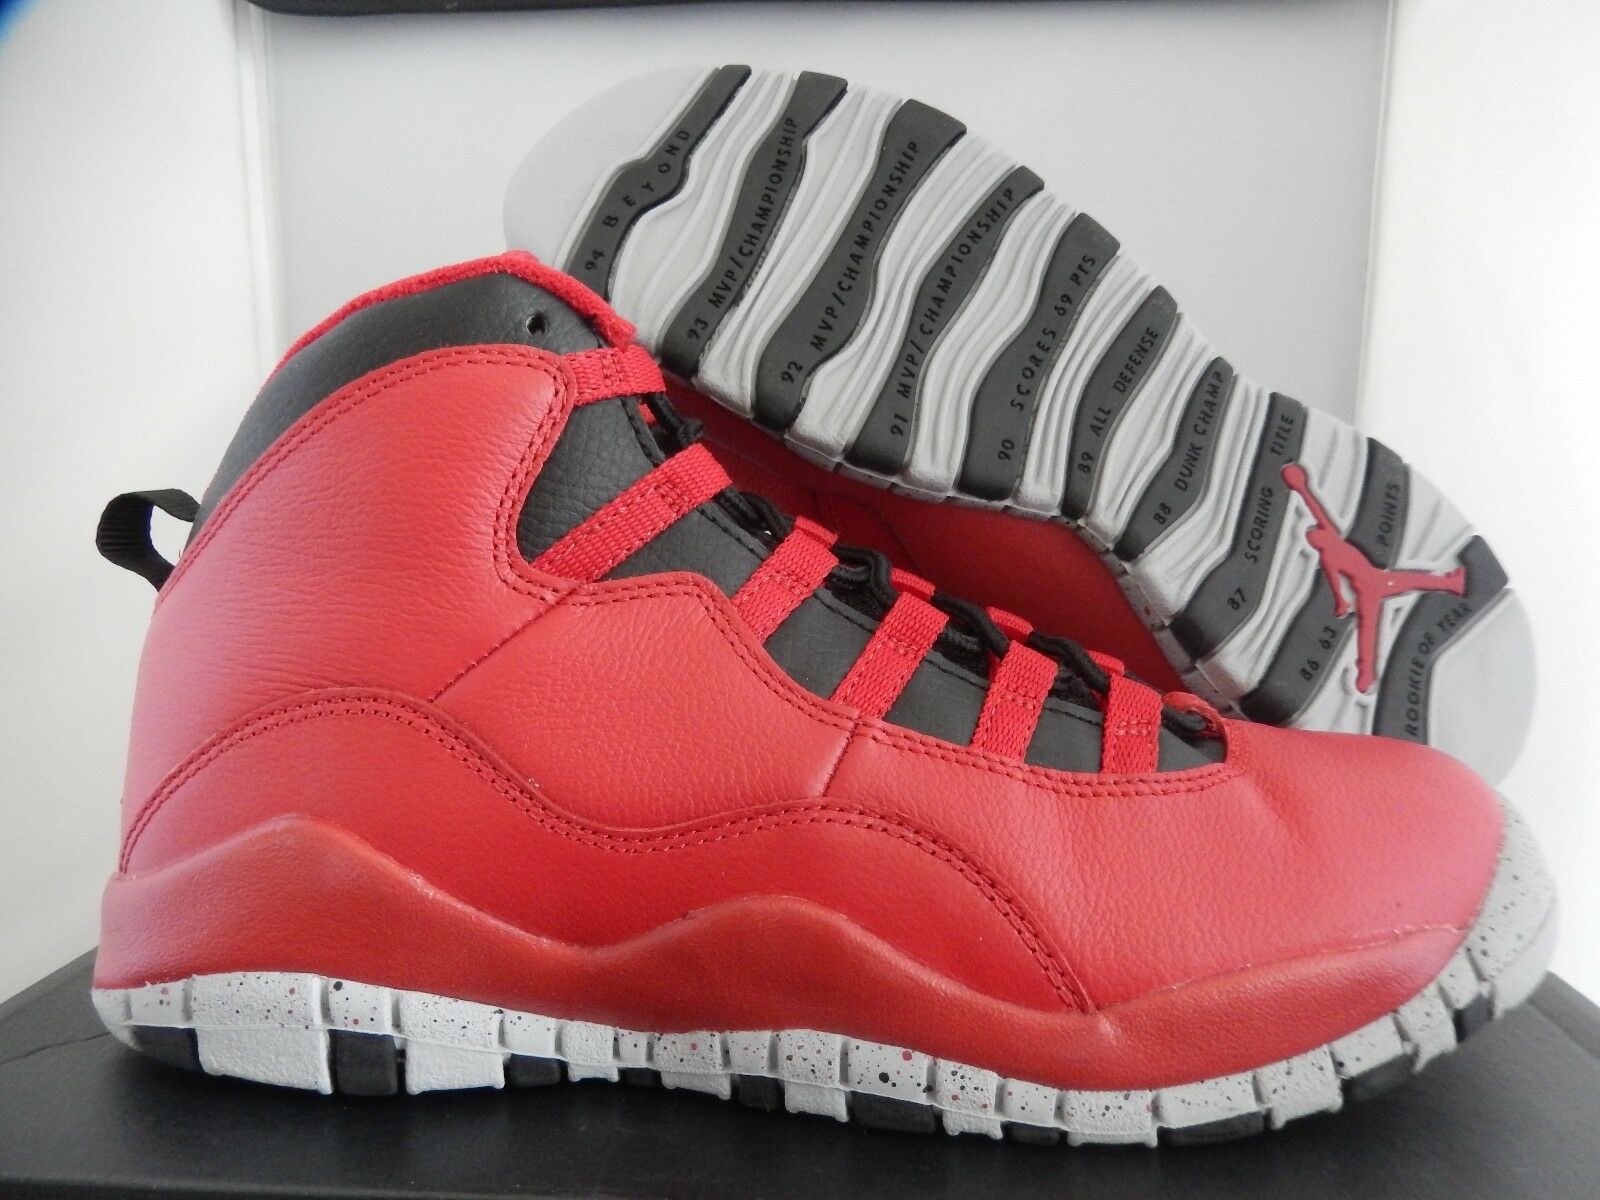 NIKE AIR JORDAN 10 RETRO 30TH SZ BG BULLS SZ 4.5Y-WOMENS SZ 30TH 6 [705179-601] 179d2a